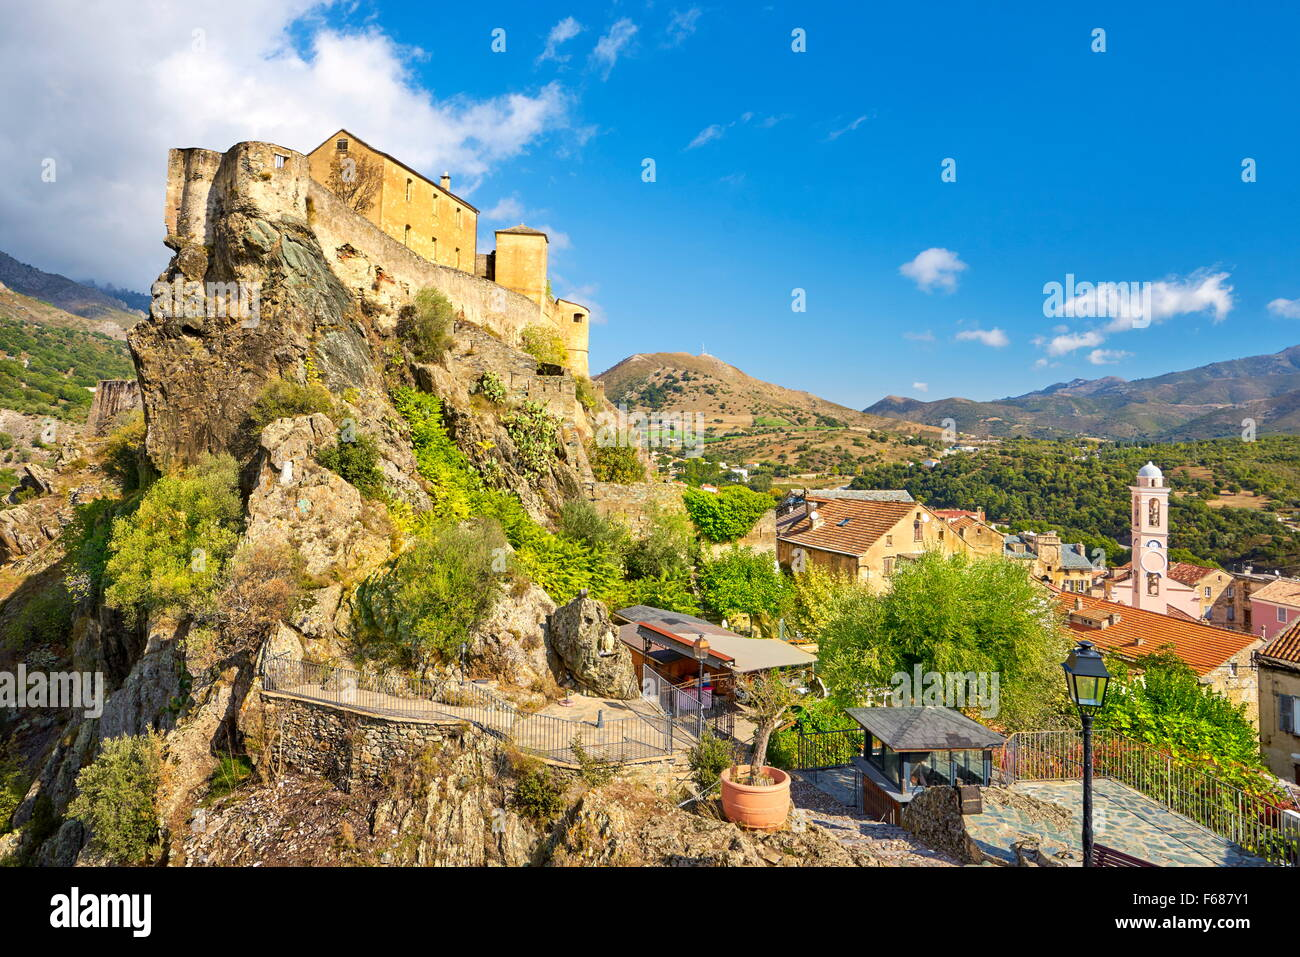 Corte, the Citadel in the Old Town, Corsica Island, France Stock Photo